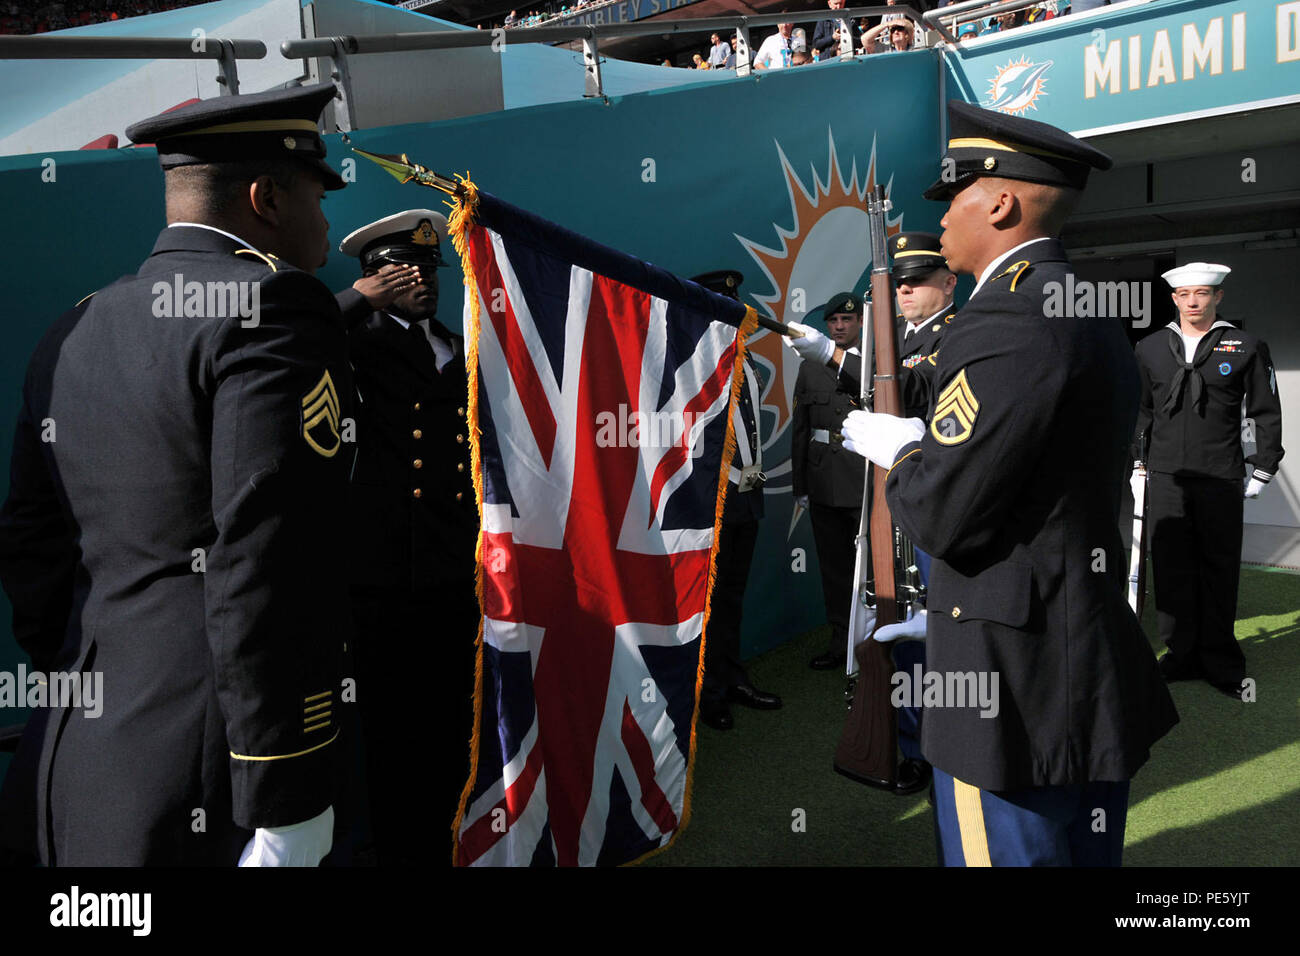 U.S. service members with the RAF Molesworth Honor Guard assist members of the U.K. Color Guard with uncasing the Union Flag before the start of the International Series, Miami Dolphins versus New York Jets NFL game at Wembly Stadium, London October 4, 2015. Military personnel from the United Kingdom and the United States joined together for the performance of the national anthems of both countries during the NFL games in London. (U.S. Air Force photo by Staff Sgt. Ashley Hawkins/Released) - Stock Image